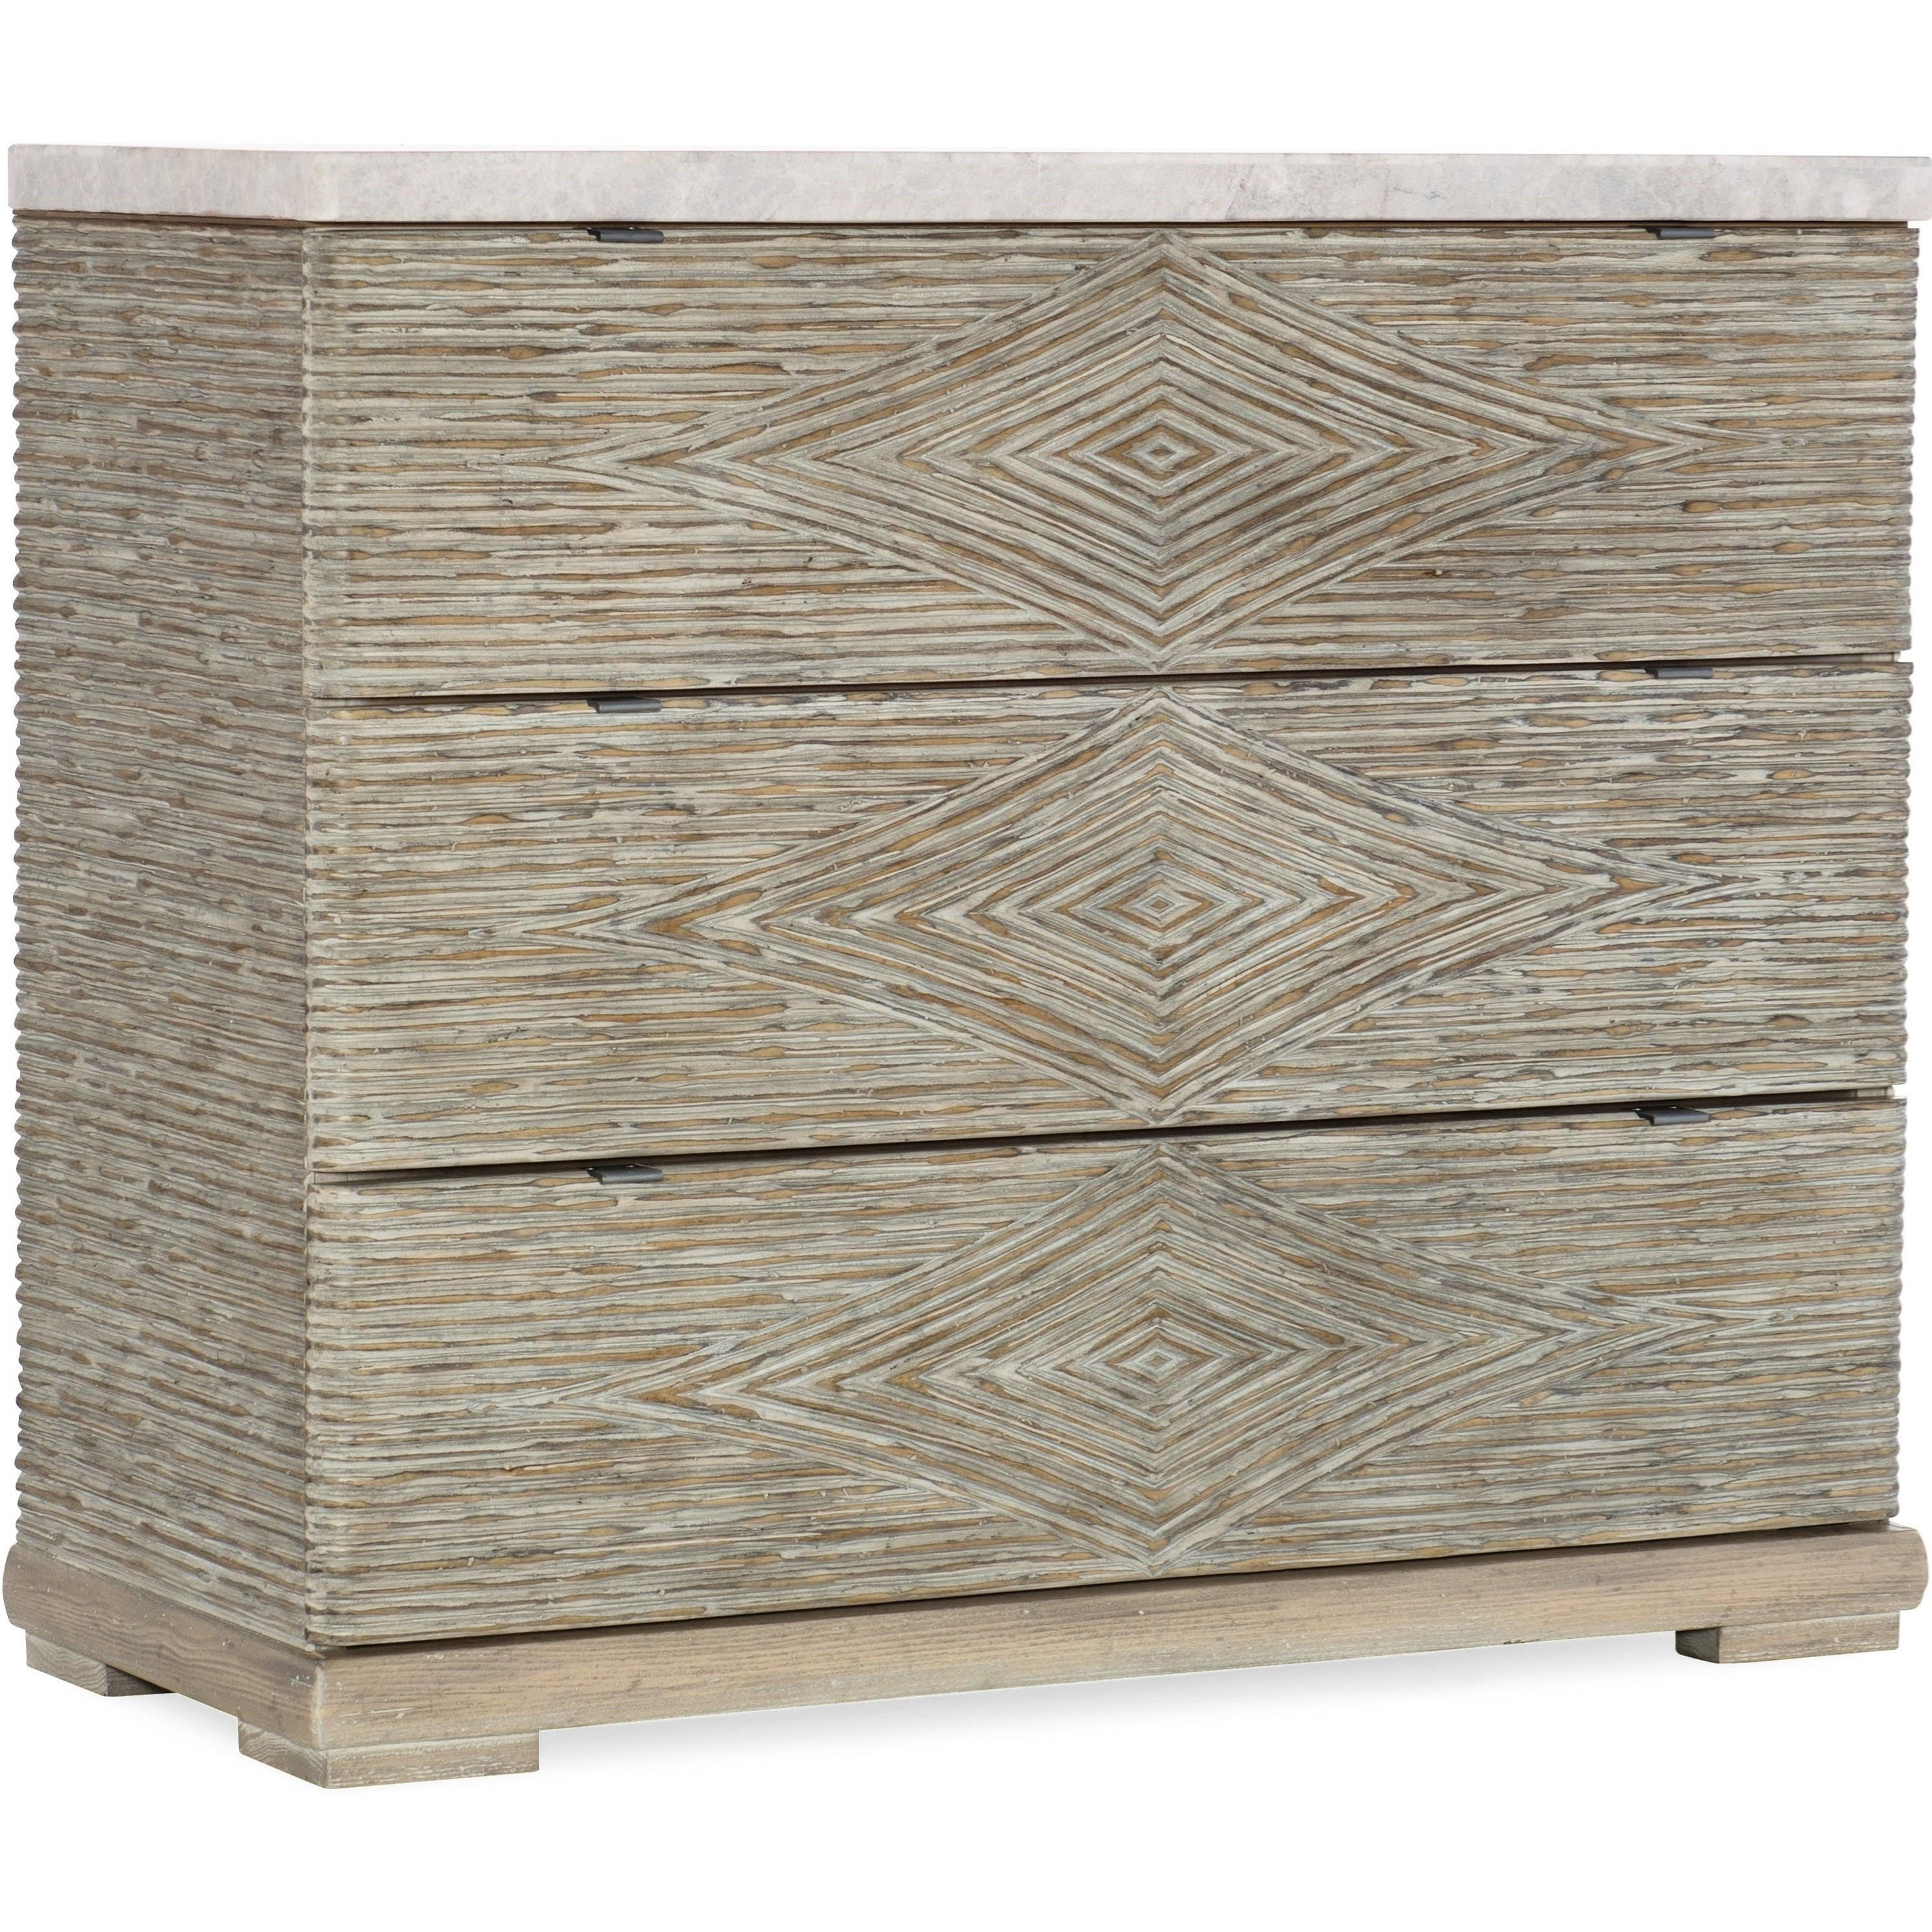 American Life-Amani Three-Drawer Accent Chest by Hooker Furniture at Miller Waldrop Furniture and Decor